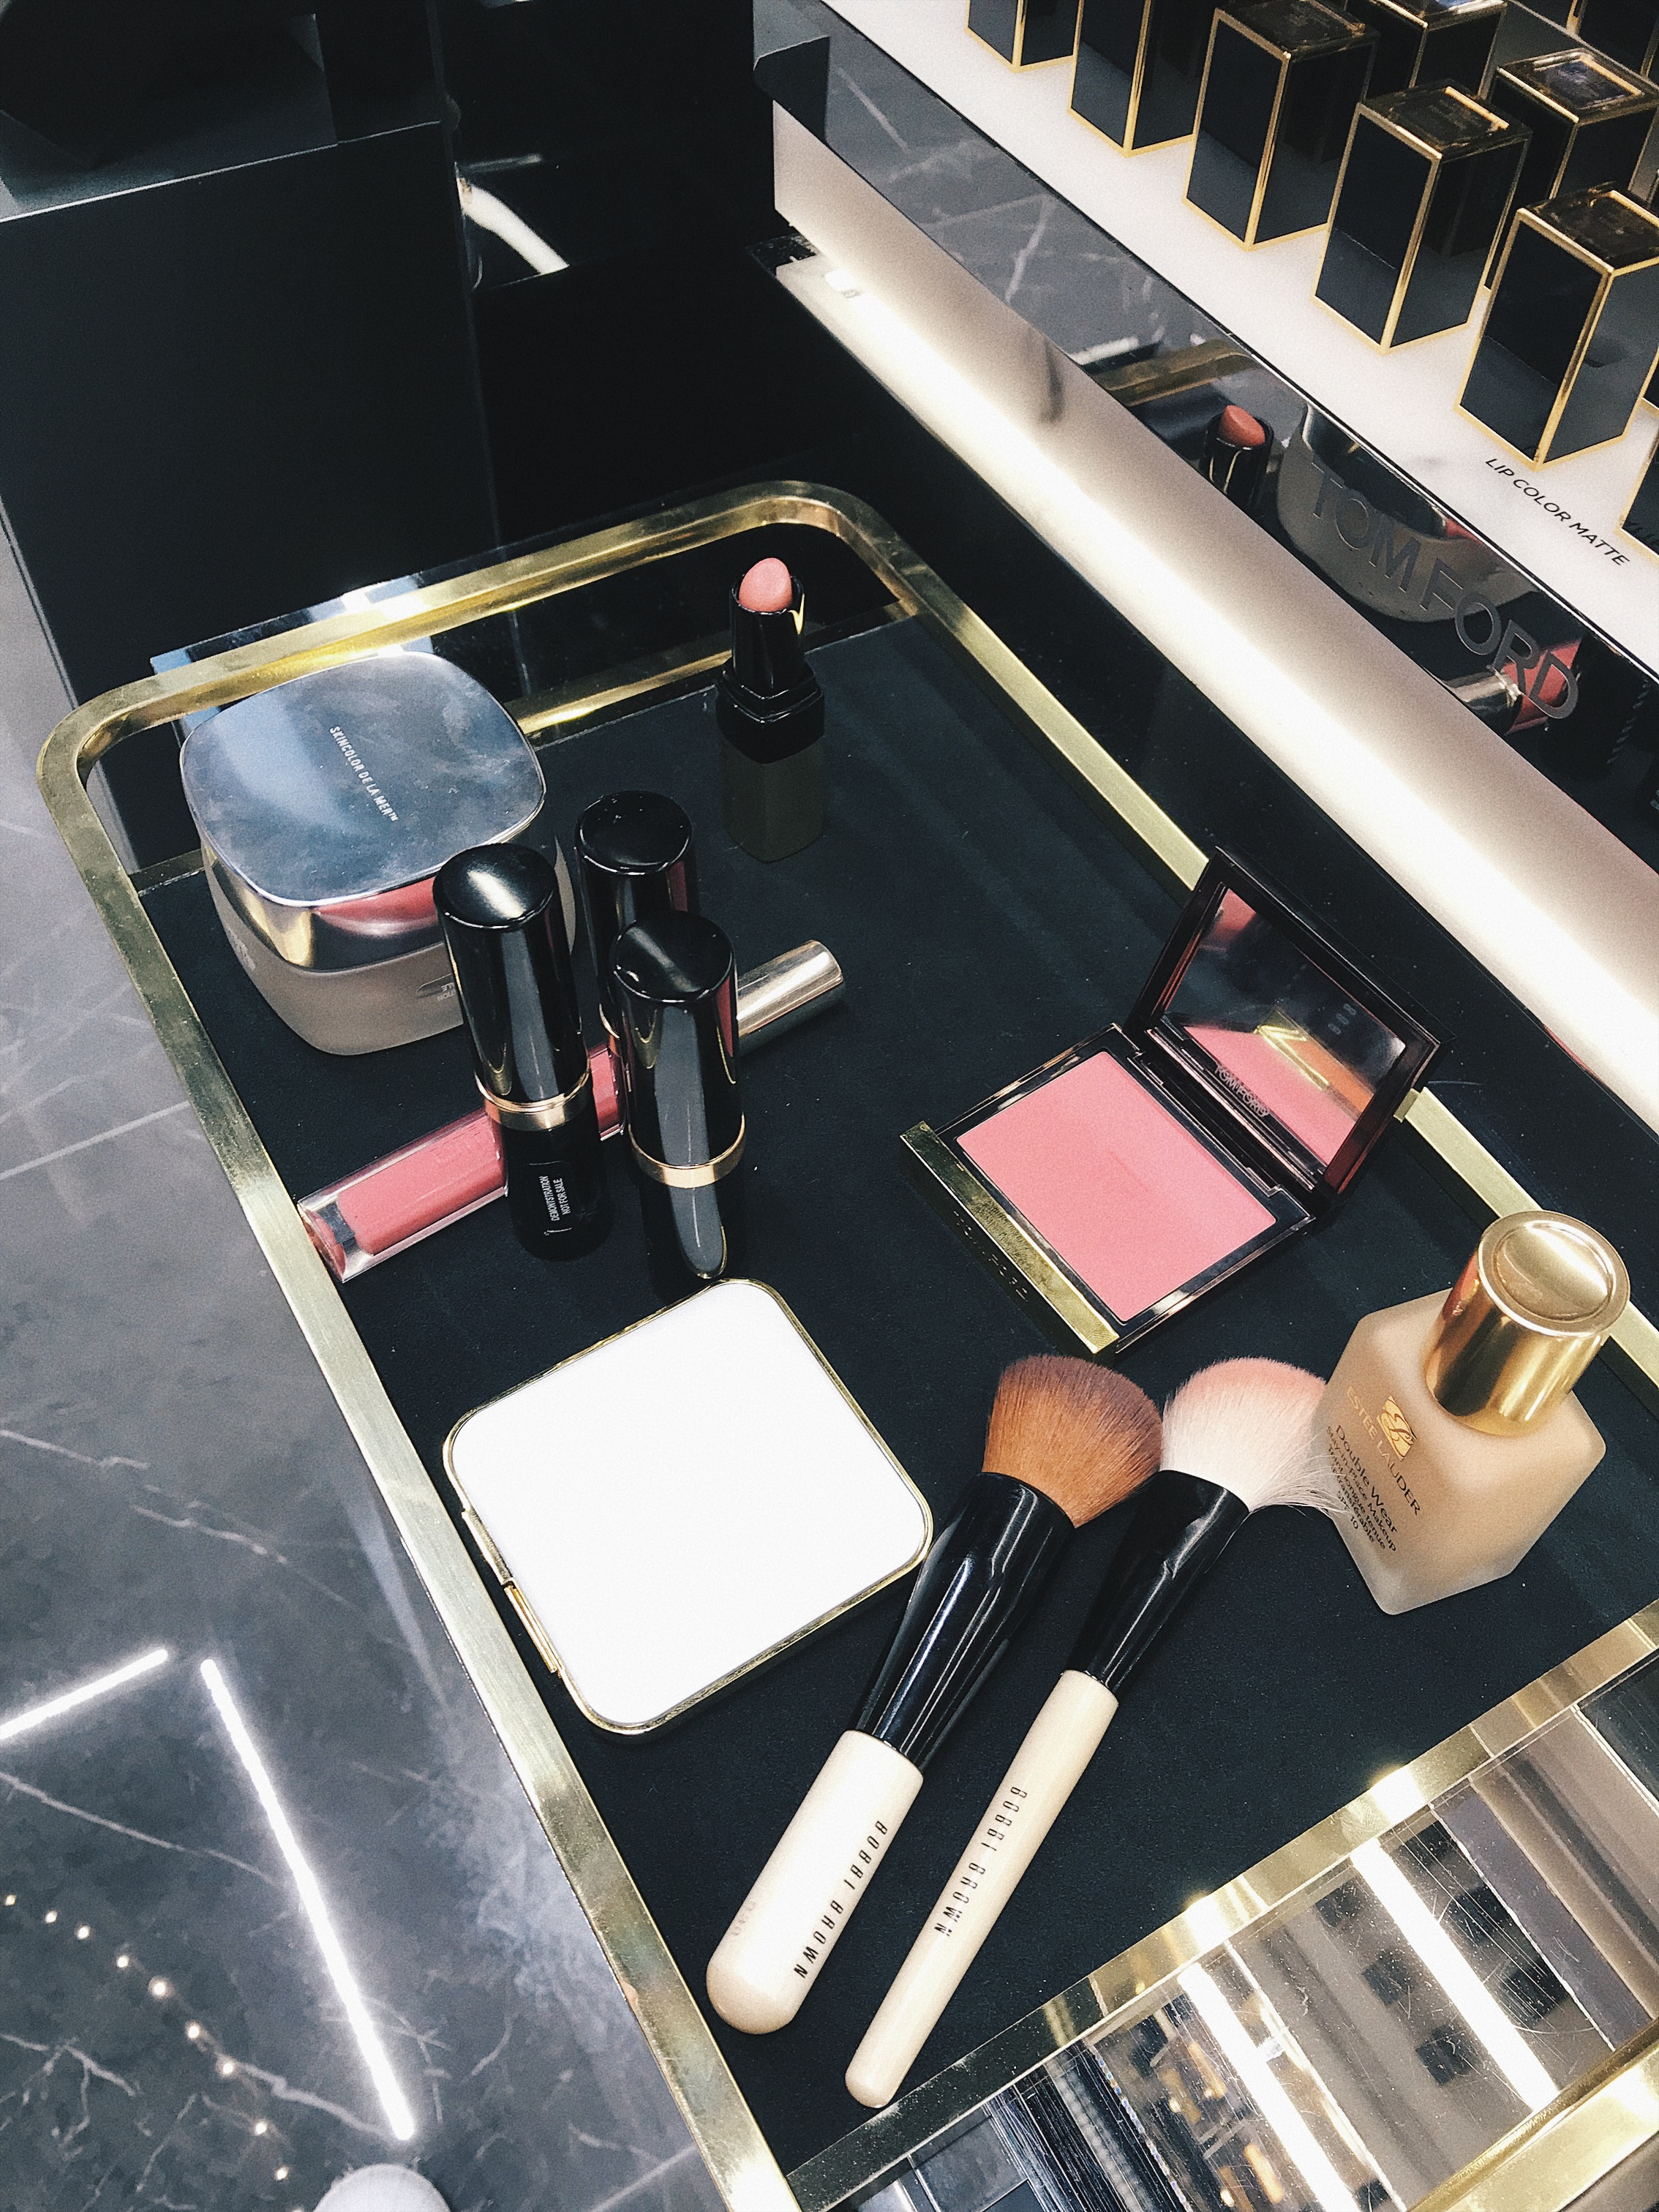 bobbi brown, tom ford, estee lauder